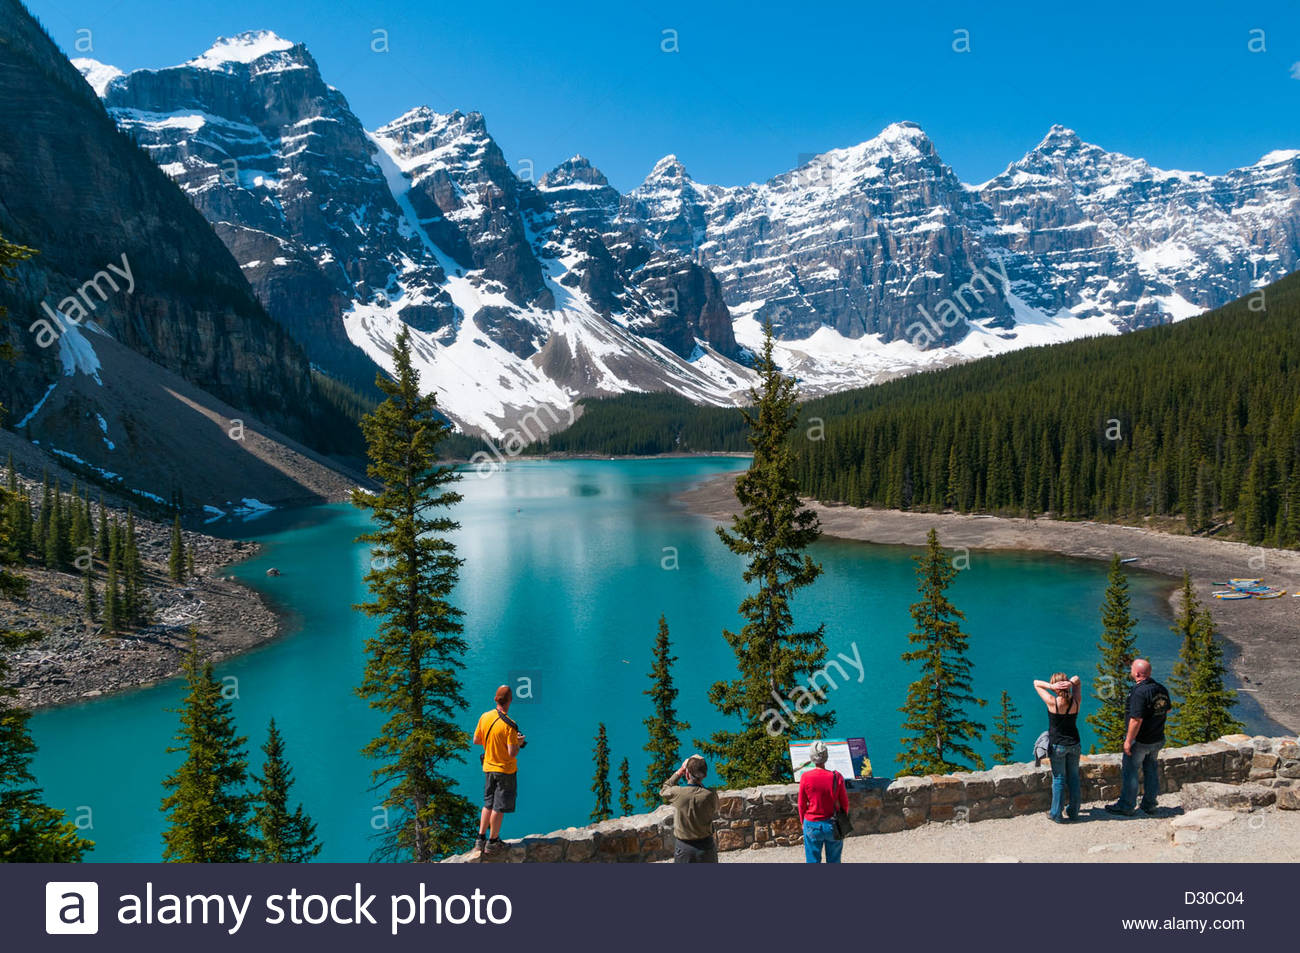 Les touristes au lac Moraine, Banff National Park, Alberta, Canada Photo Stock